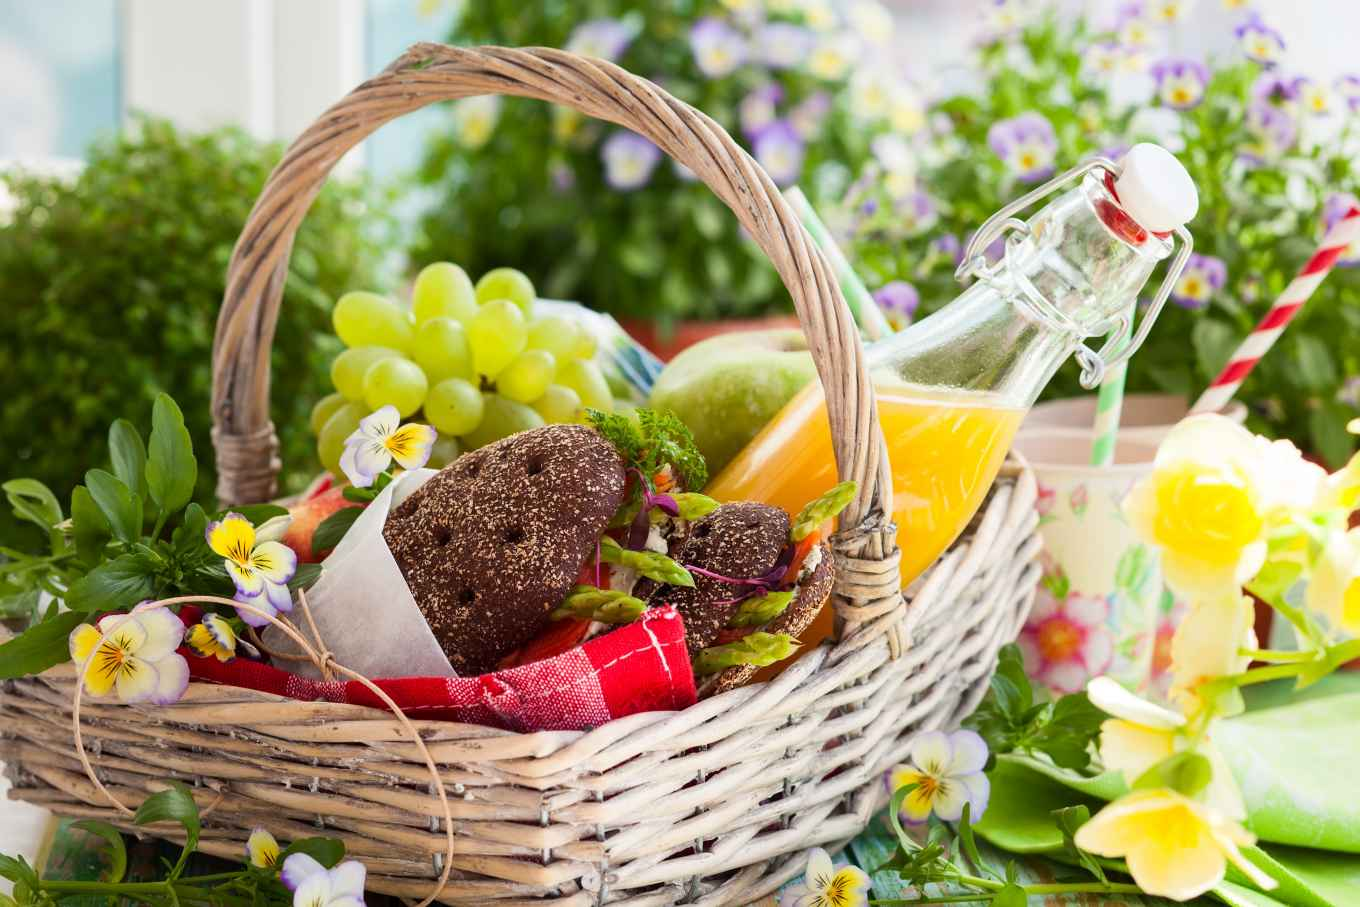 Wondering what to bring to a summer potluck or BBQ? Enjoy these three healthy fast ideas!